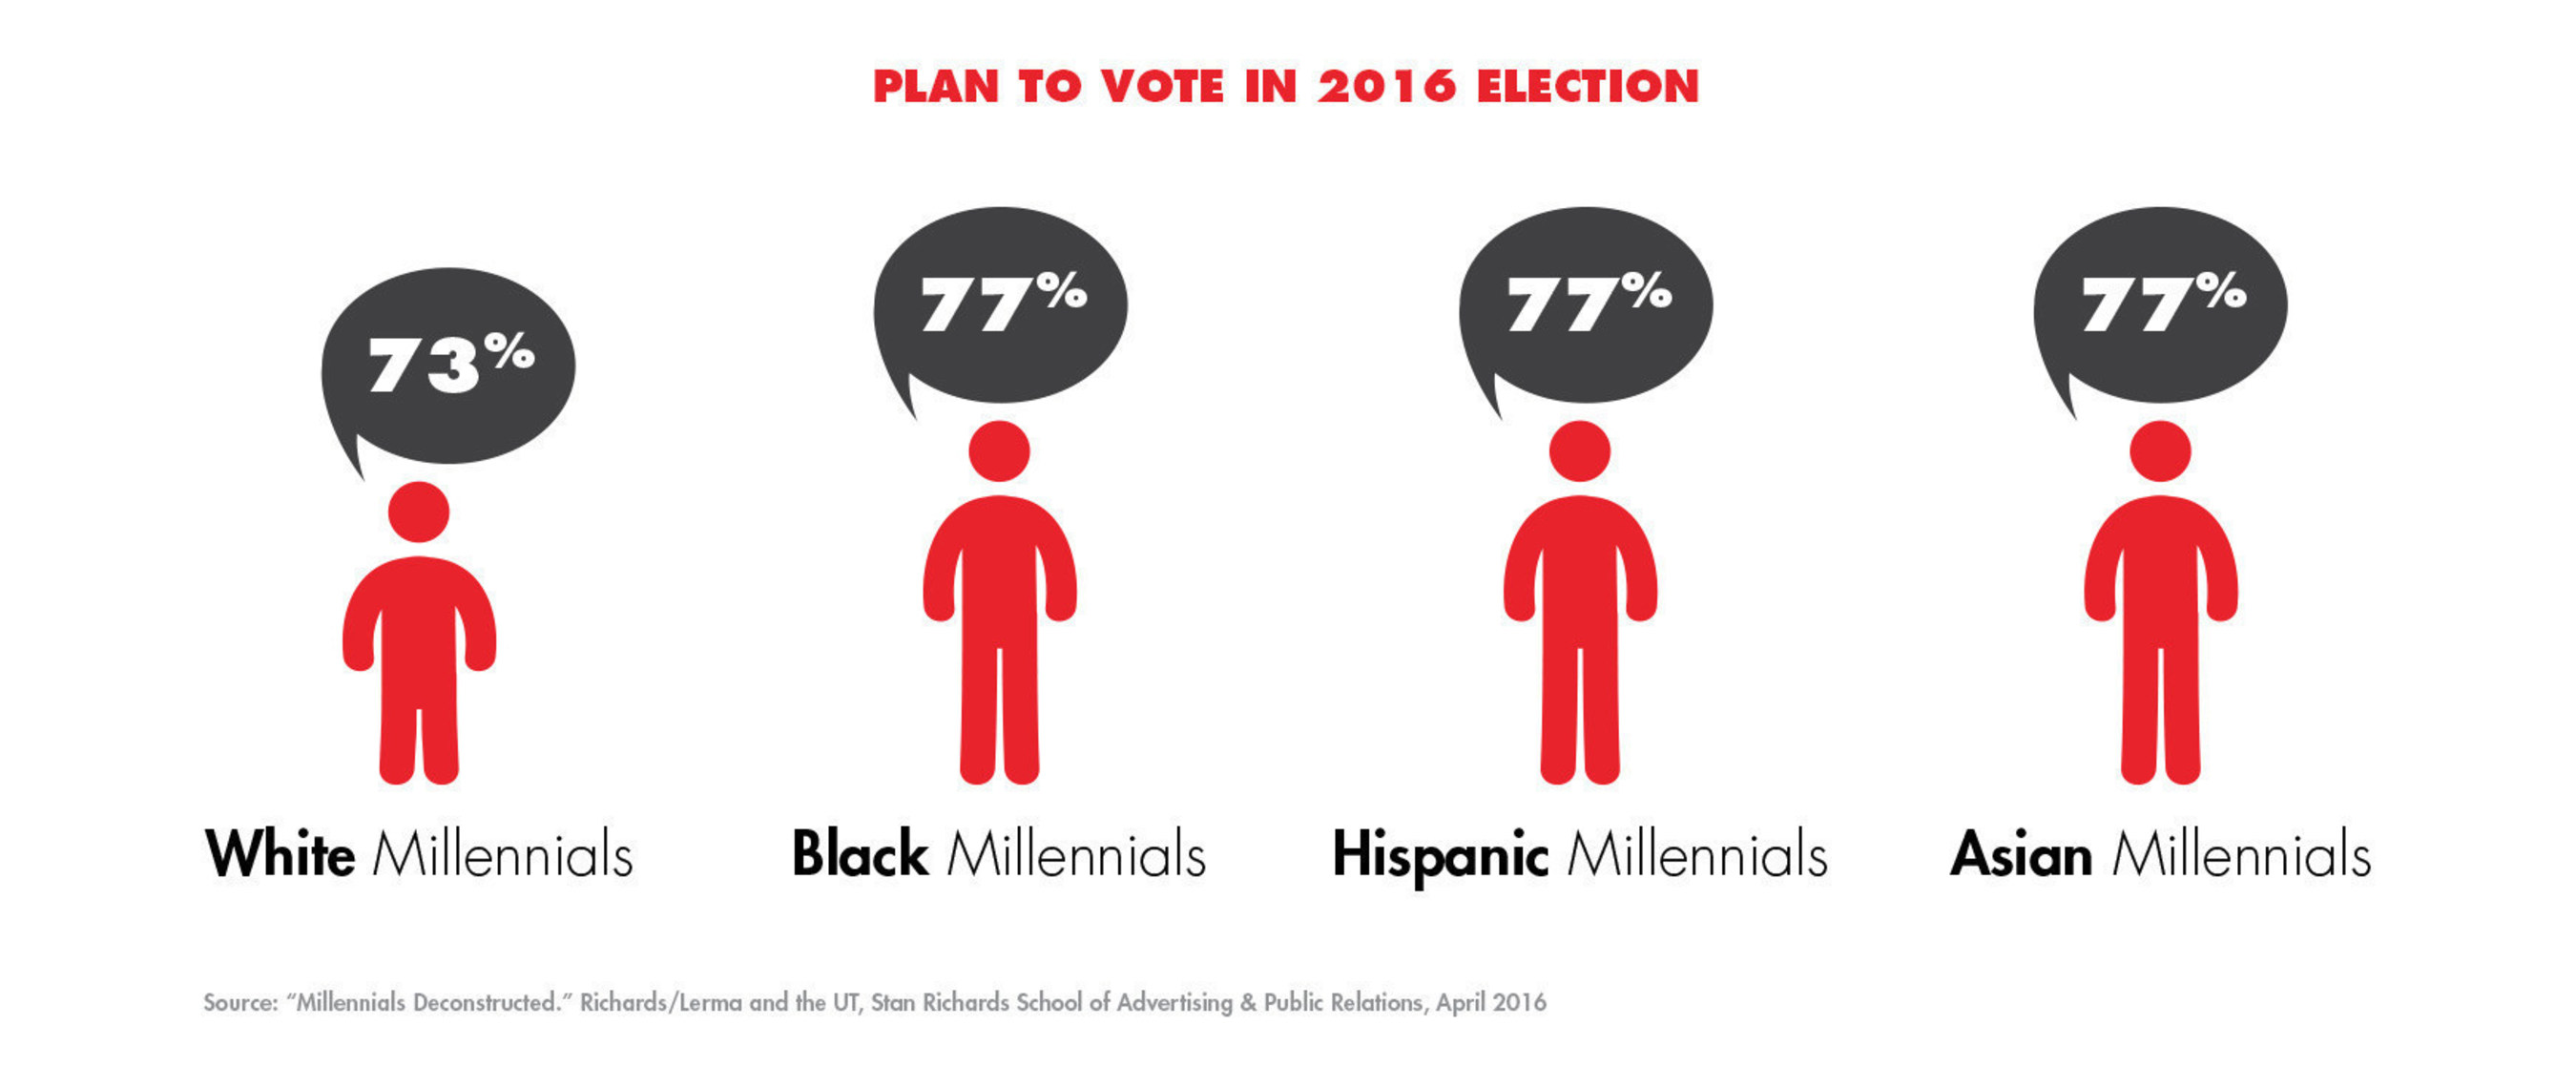 Plan to vote in the 2016 election?